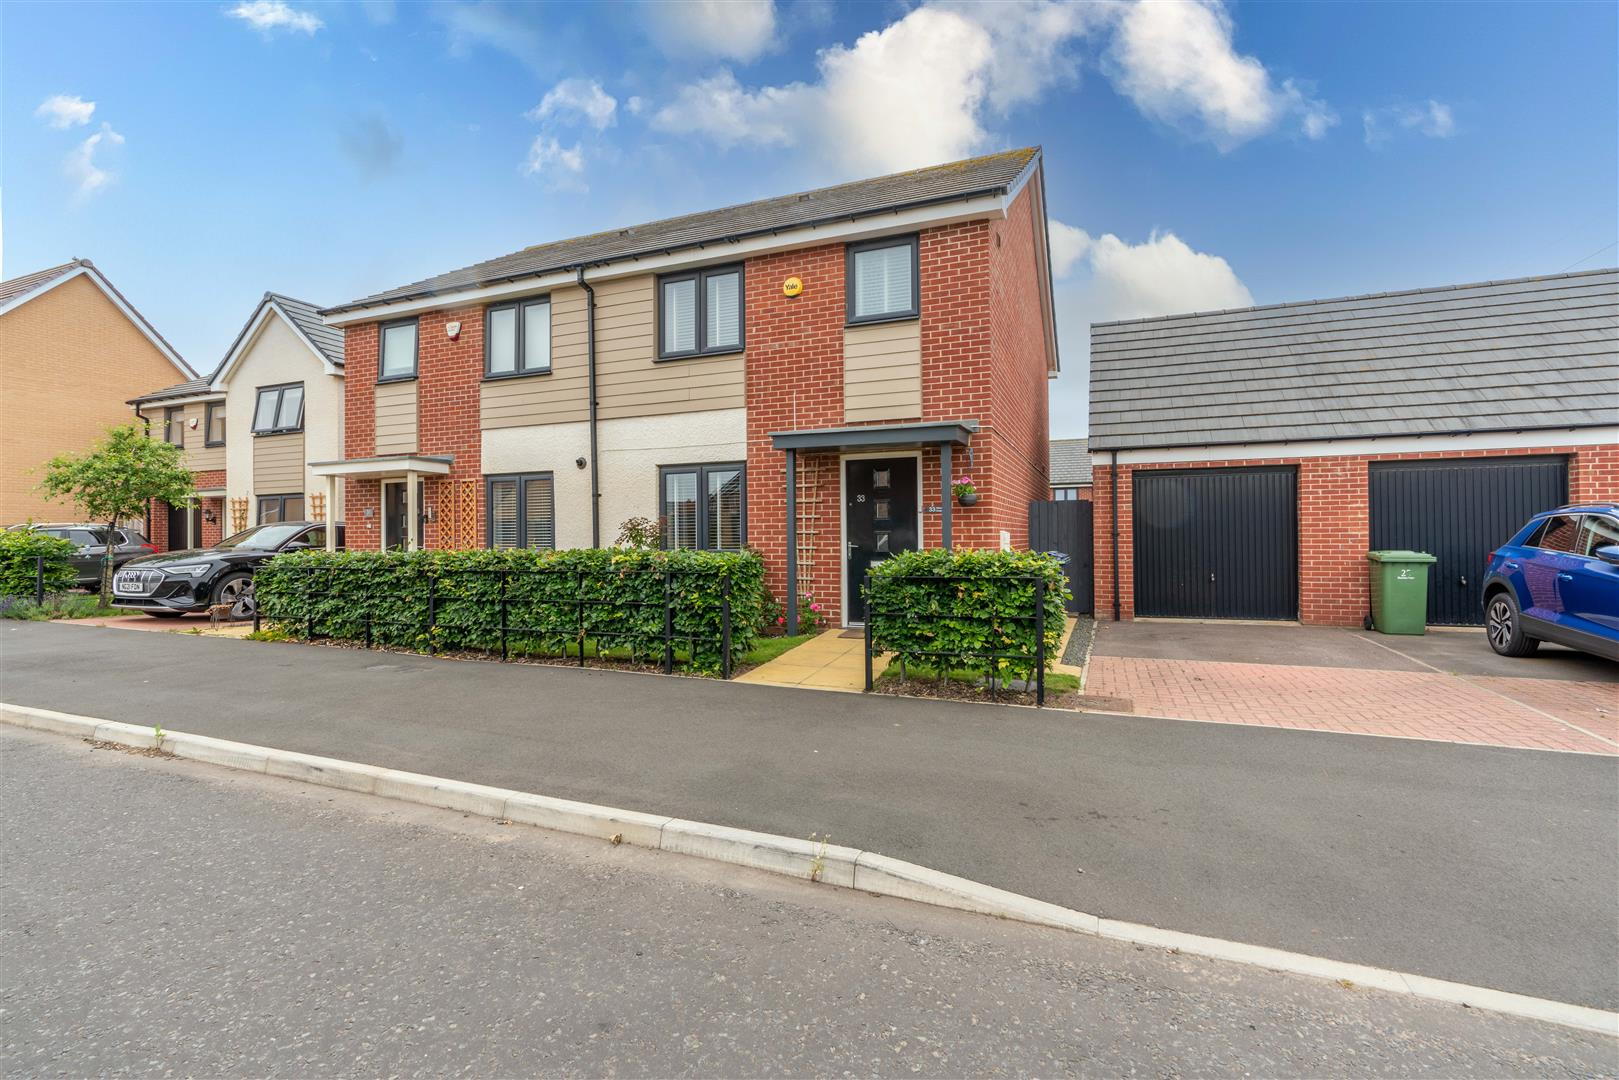 3 bed semi-detached house for sale in Heron Crescent, Great Park, NE13